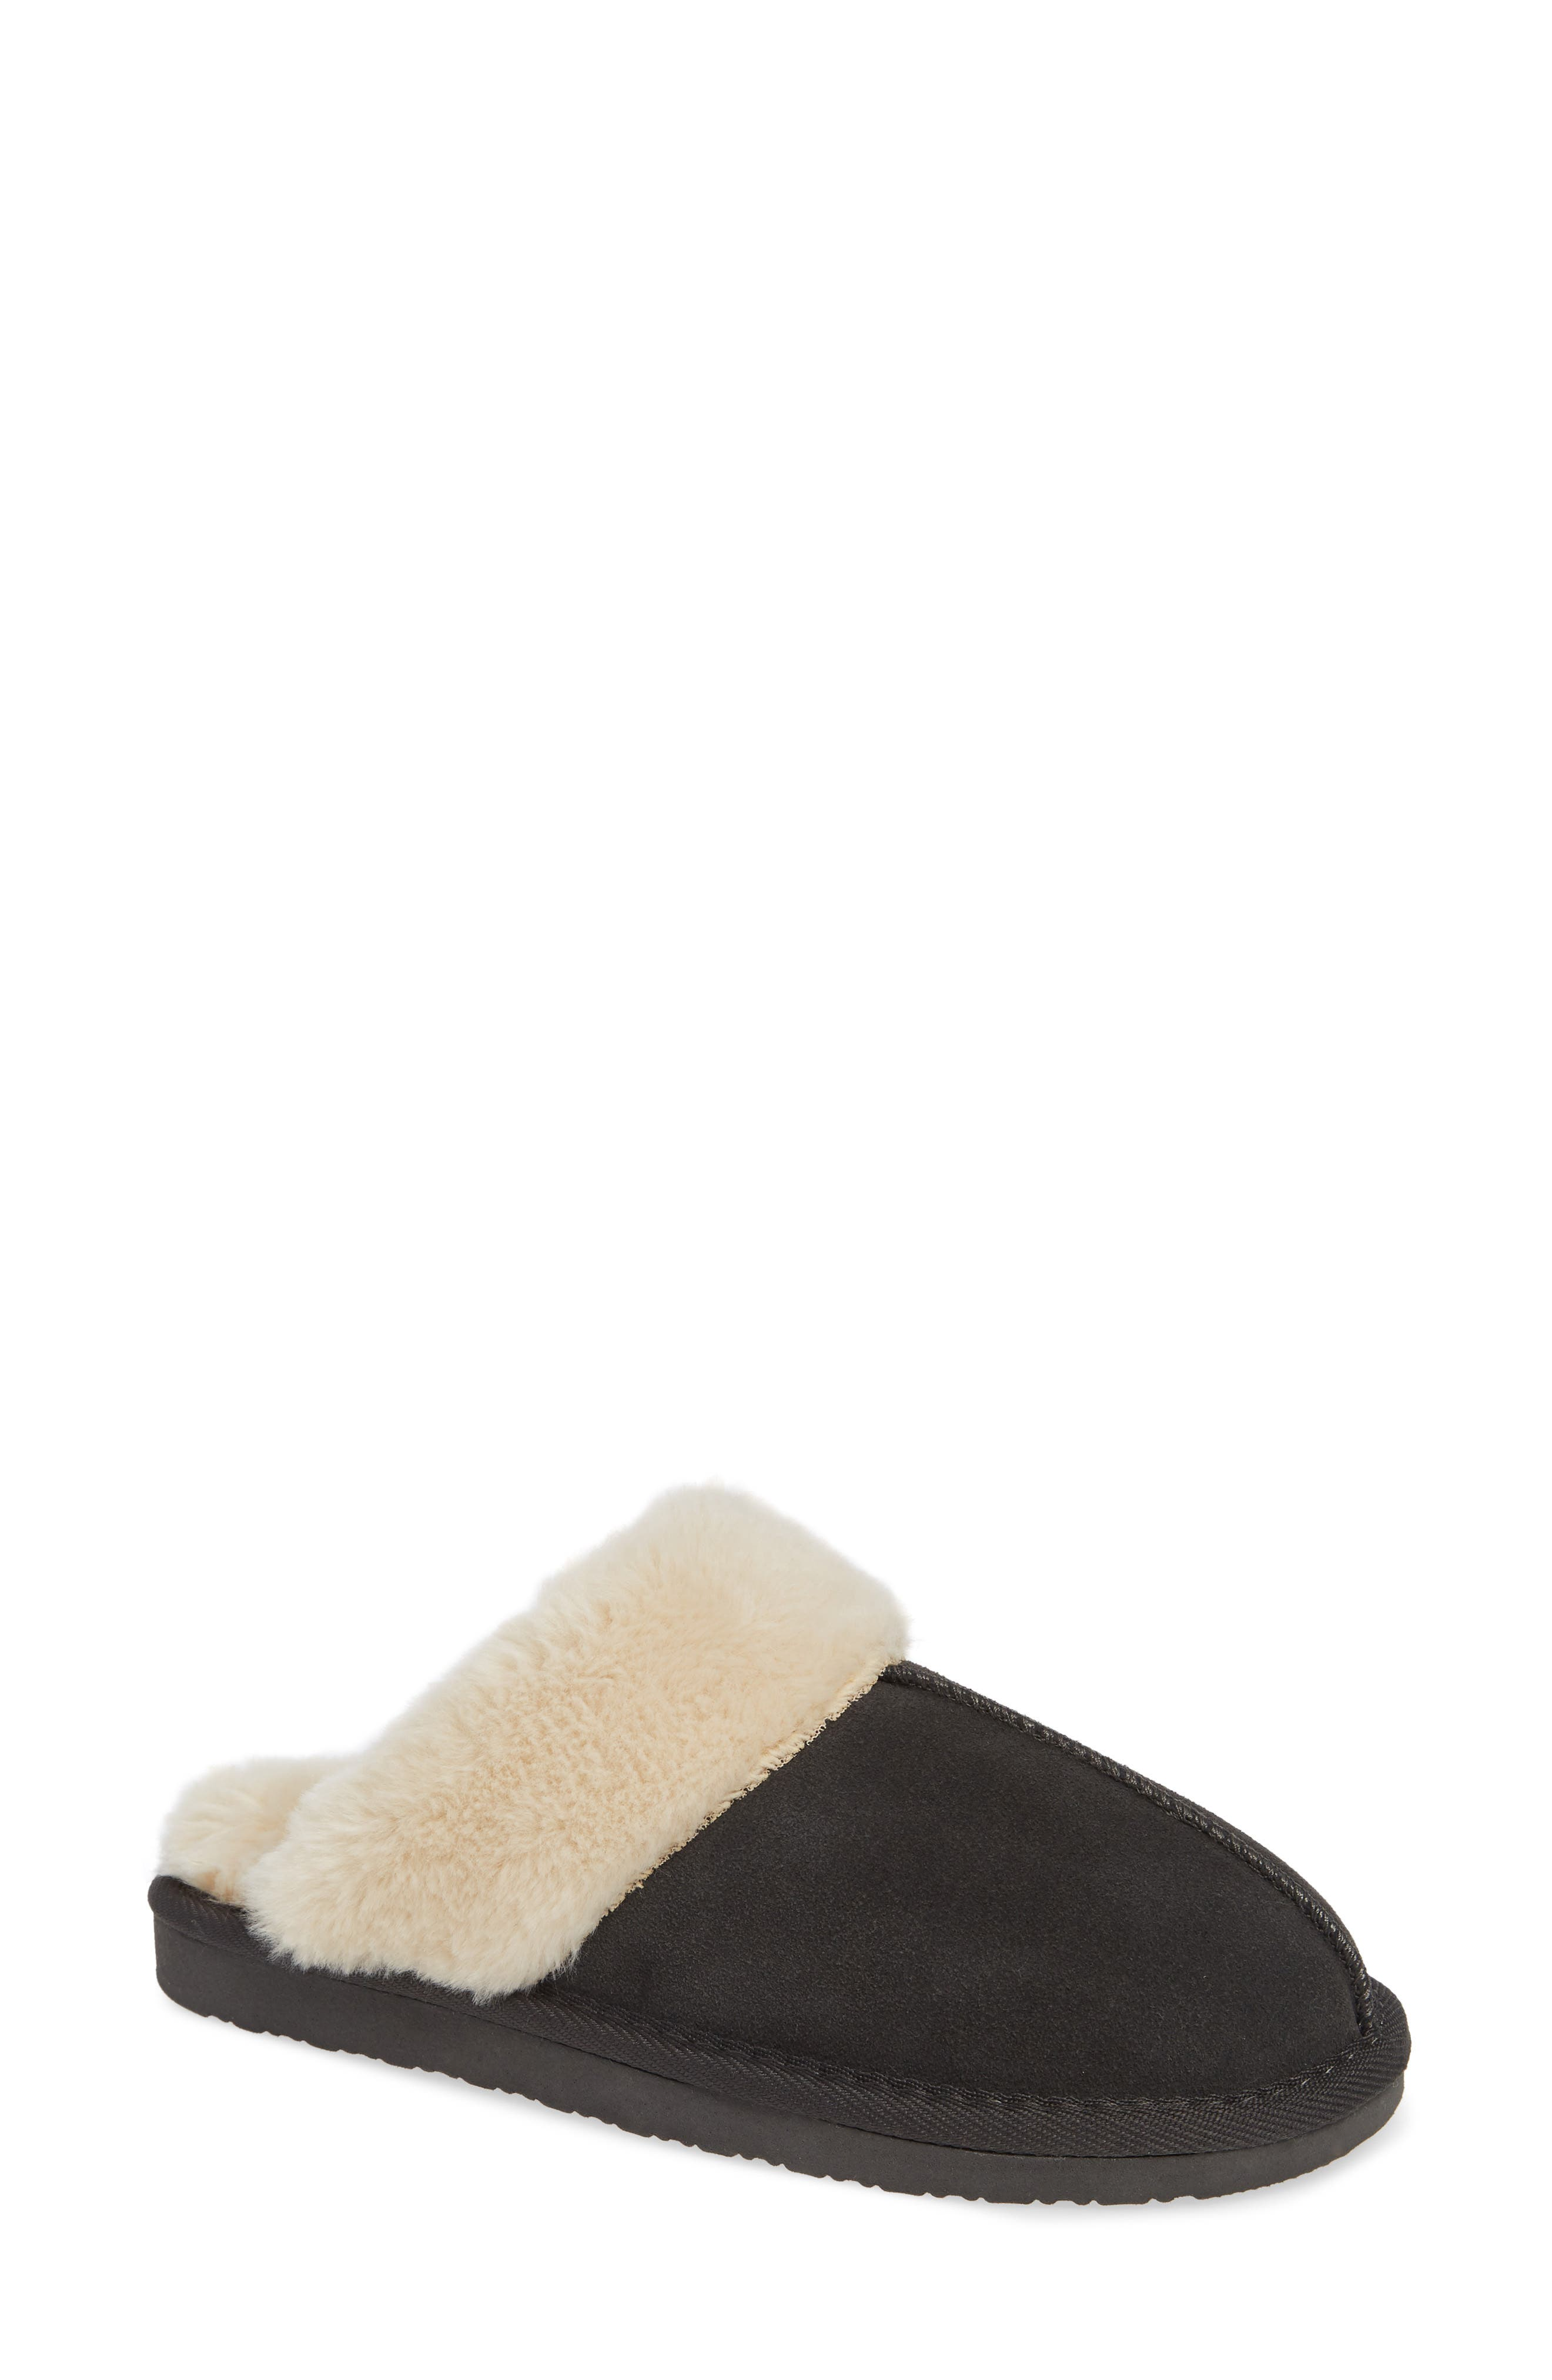 MINNETONKA, Mule Slipper, Main thumbnail 1, color, CHARCOAL SUEDE